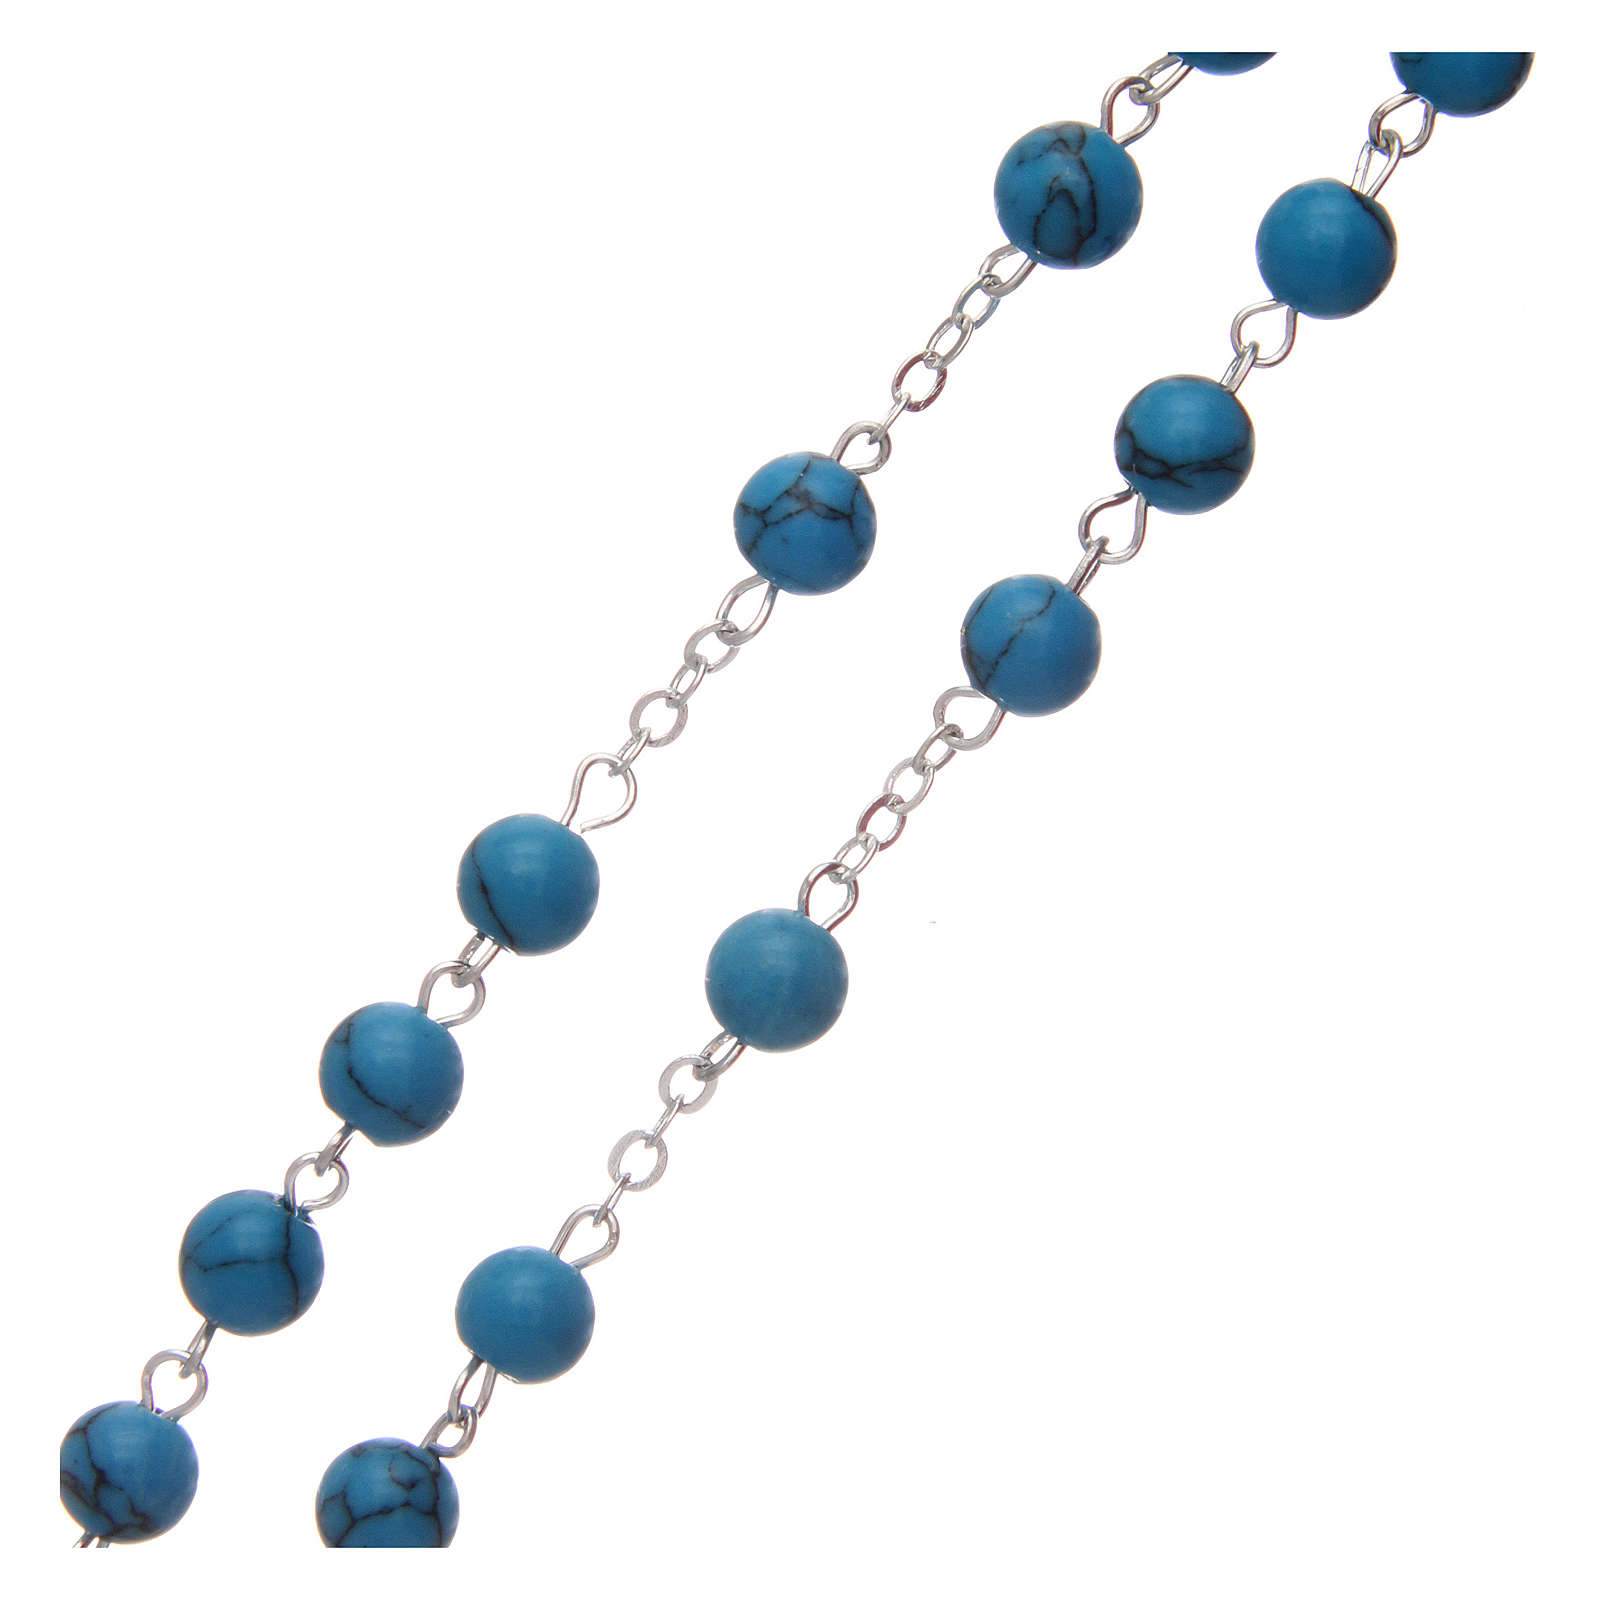 Turquoise rosary beads 6 mm 4